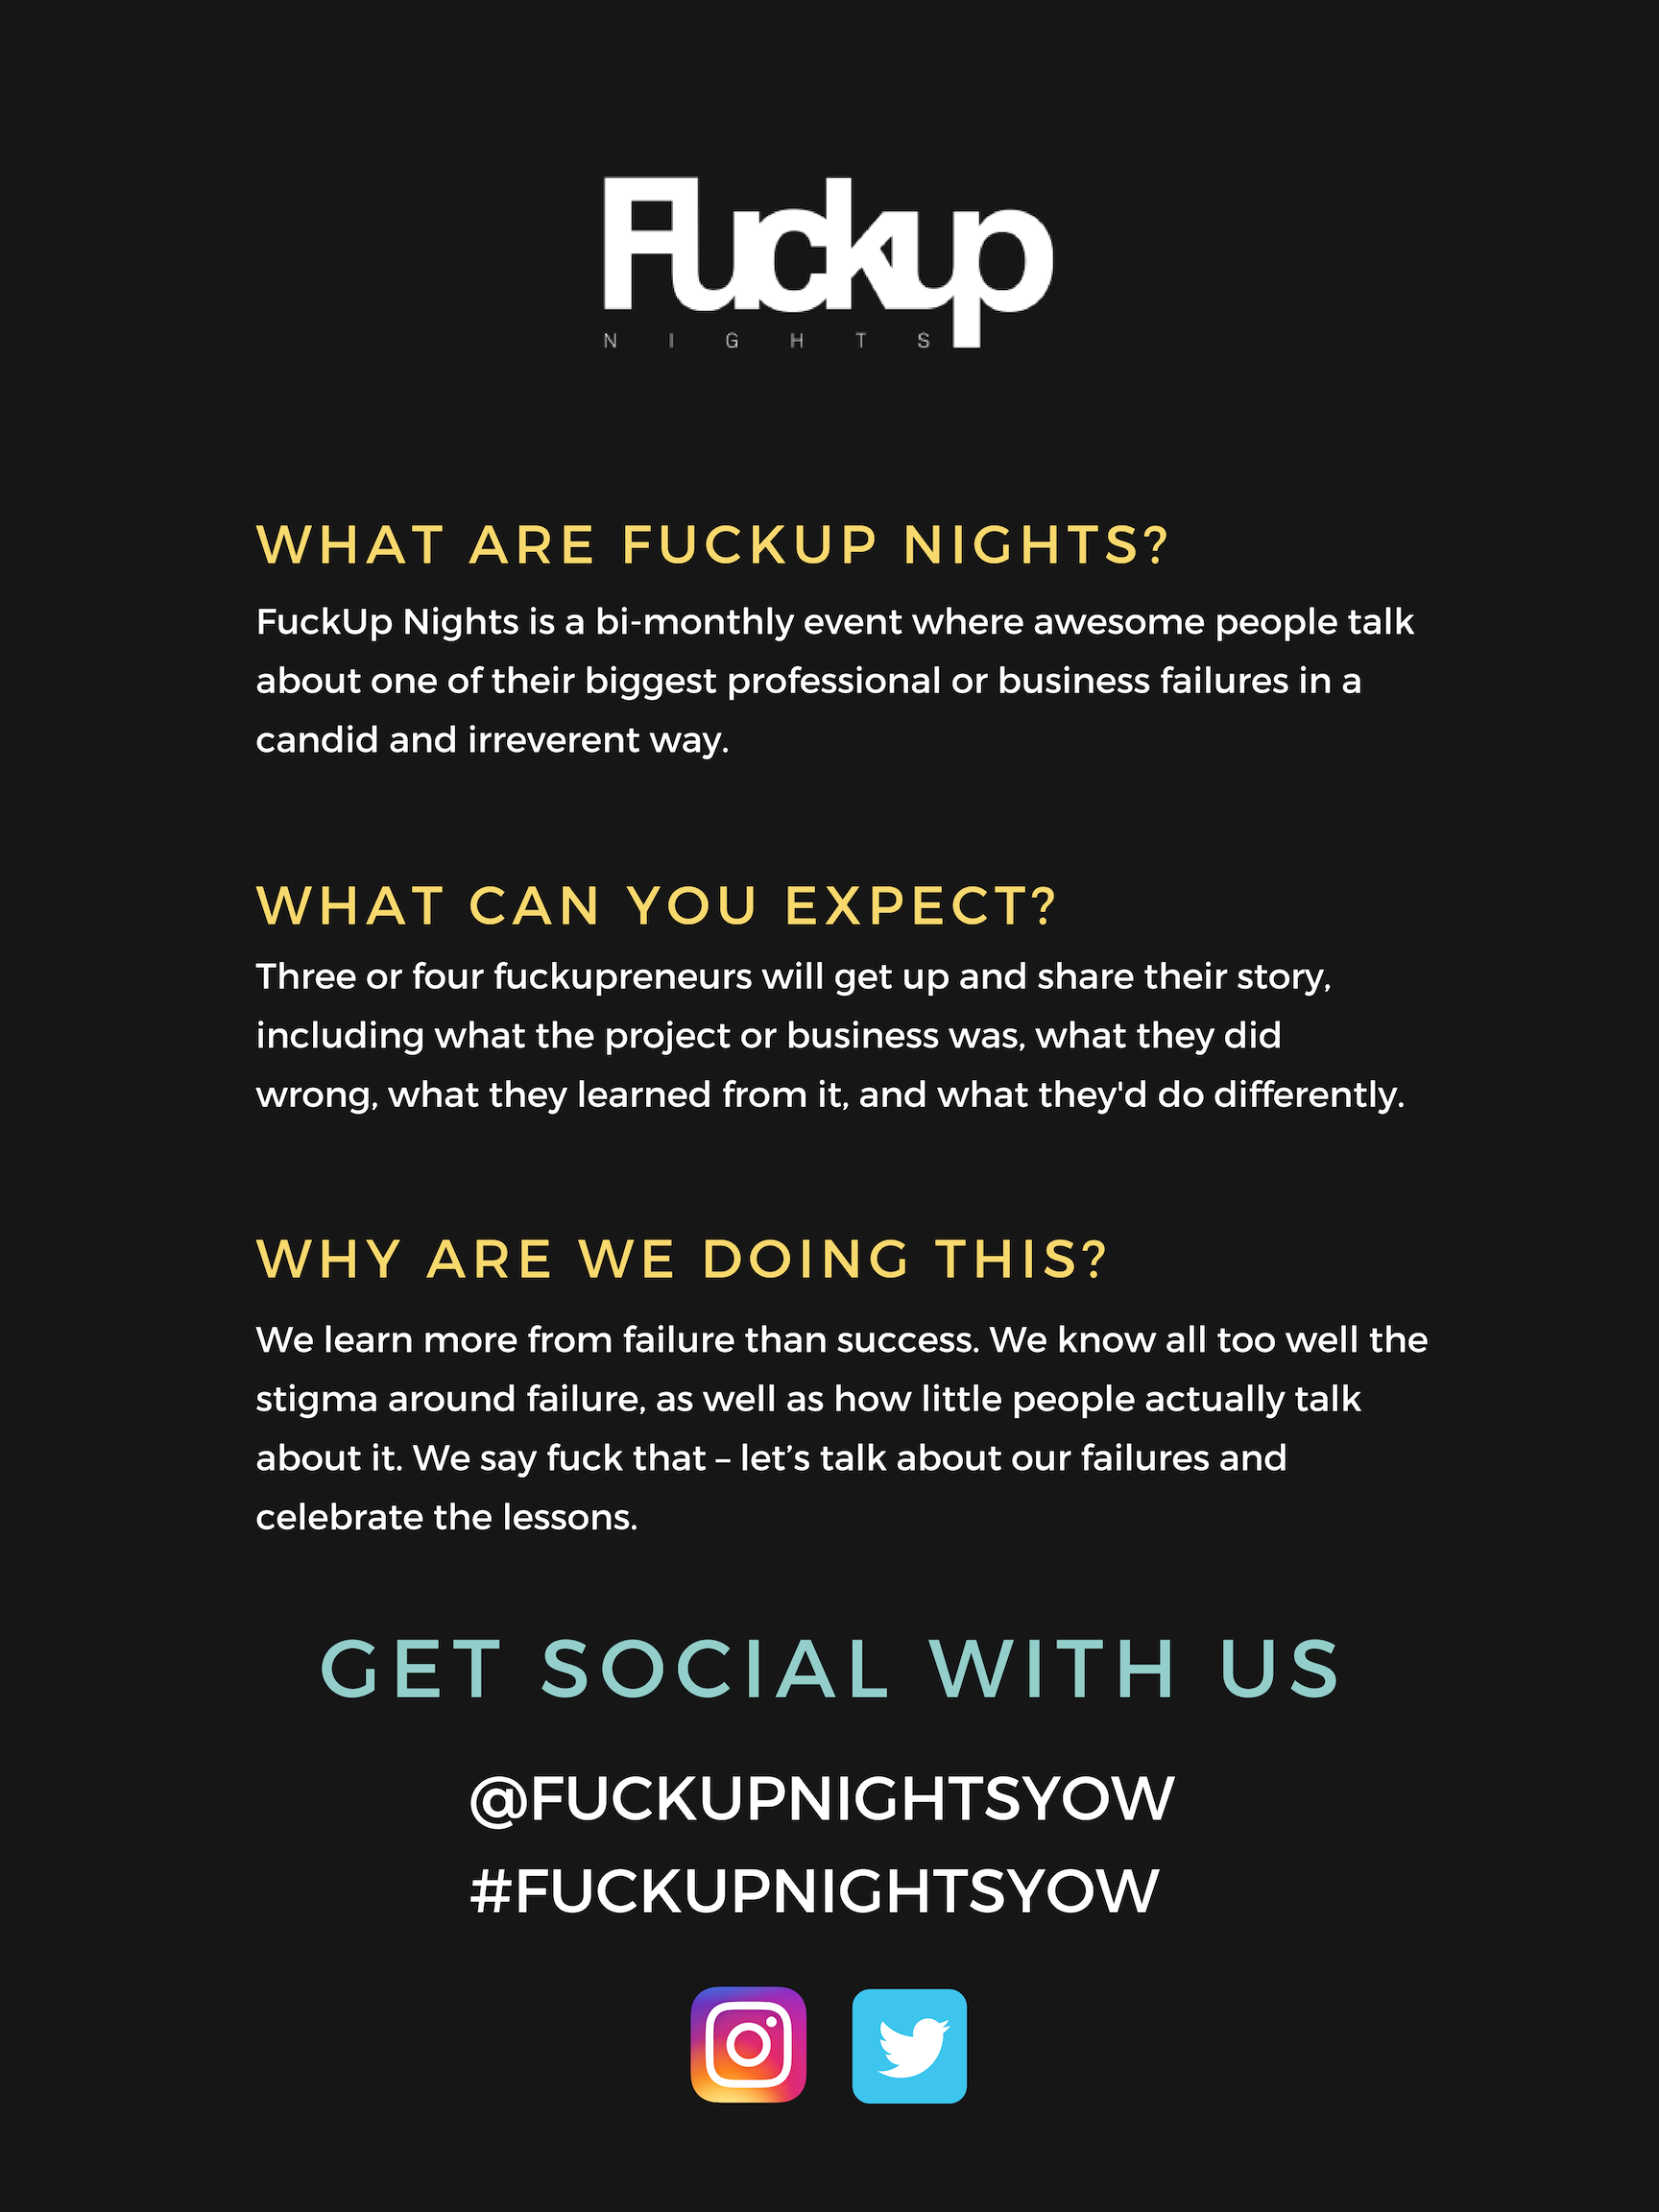 What are fuckup nights? FuckUp Nights is a bi-monthly event where awesome people talk about one of their biggest professional or business failures in a candid and irreverent way.  What can you expect? Three or four fuckupreneurs will get up and share their story, including what the project or business was, what they did wrong, what they learned from it, and what they'd do differently.  Why are we doing this? We learn more from failure than success. We know all too well the stigma around failure, as well as how little people actually talk about it. We say fuck that – let's talk about our failures and celebrate the lessons.